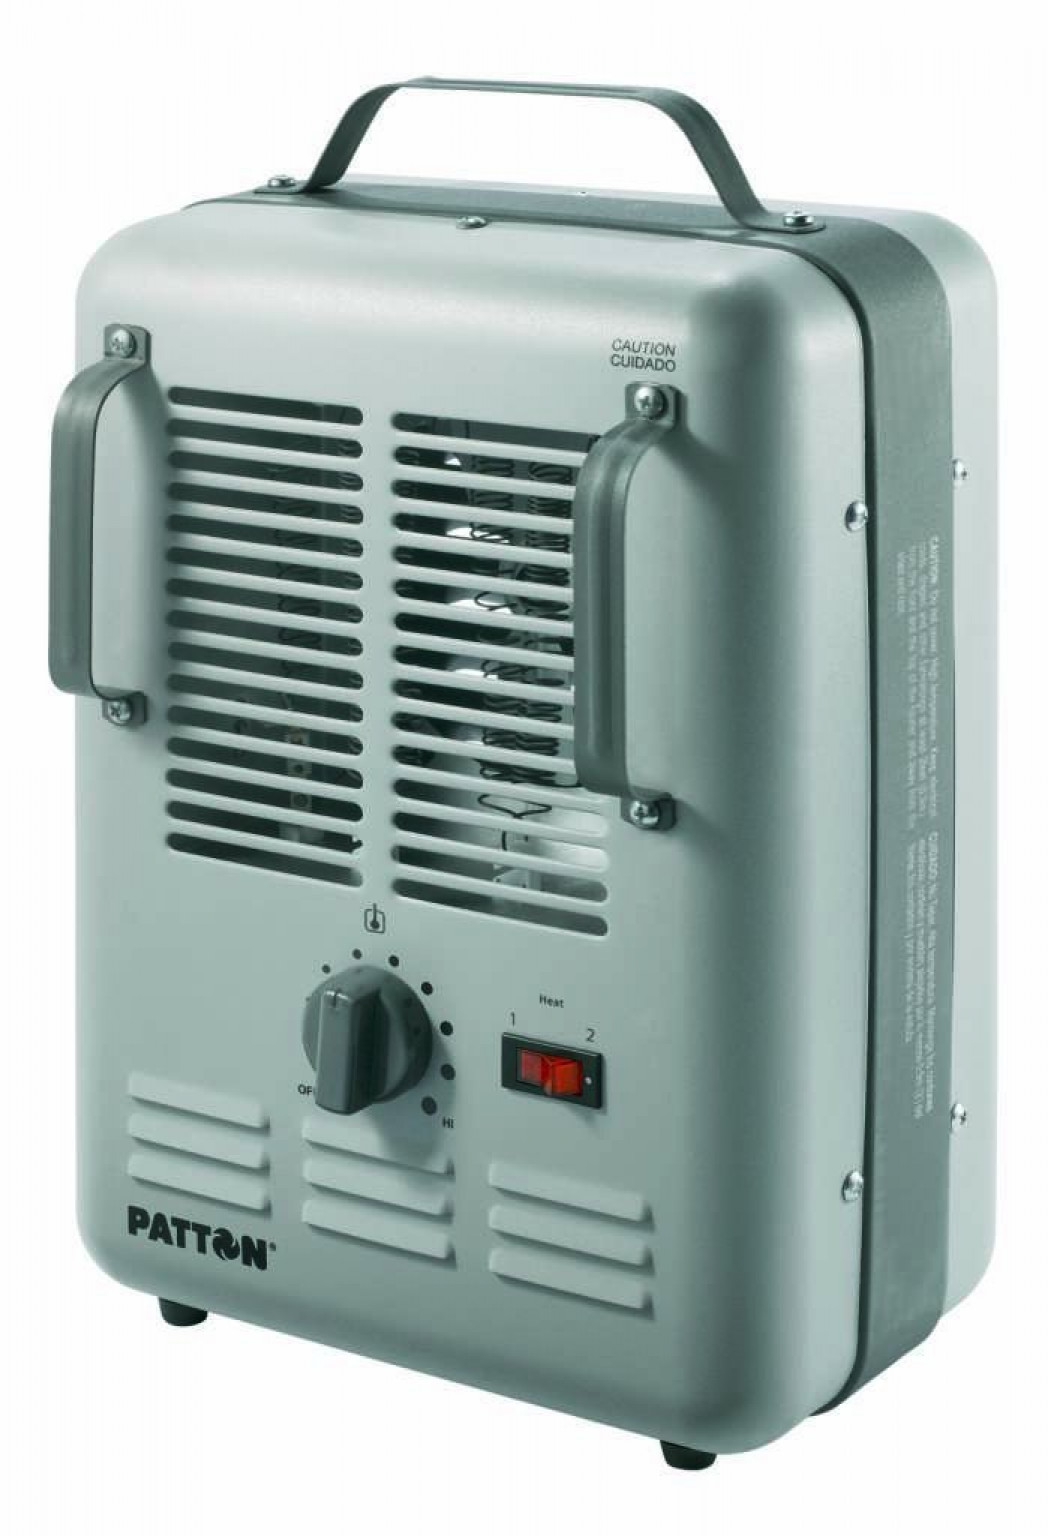 Patton Space Heater w Quiet Fan Office House Utility Bedroom Air ...